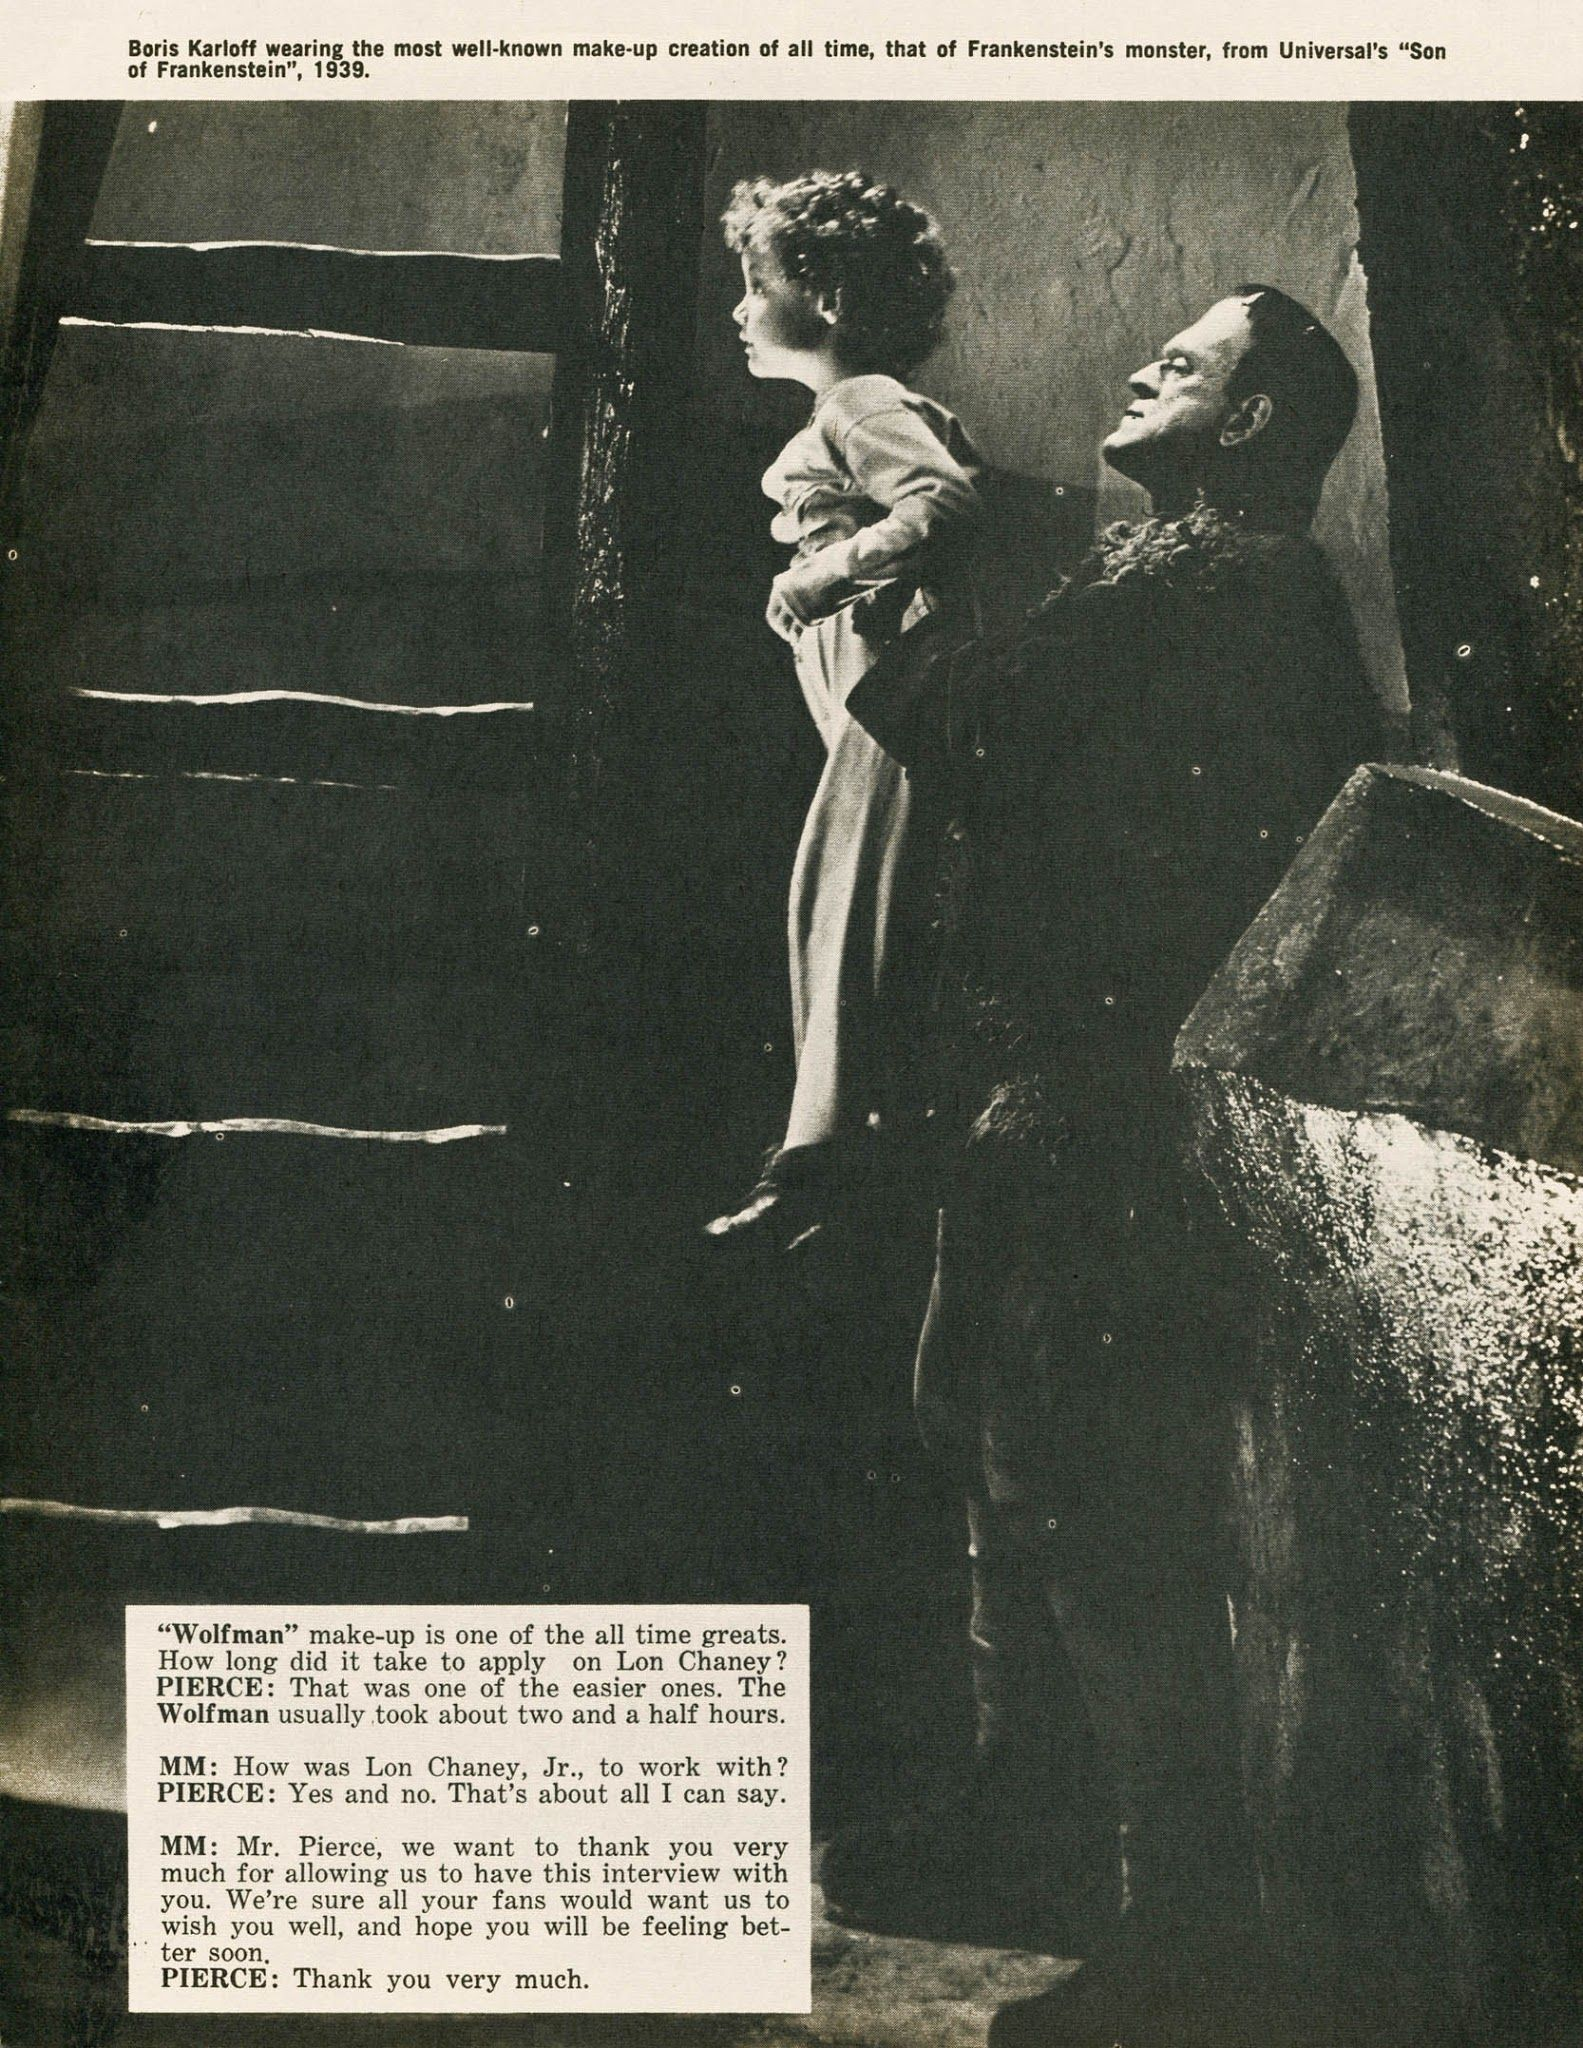 Frankenstein': James Whale's Macabre Take on One of the Most